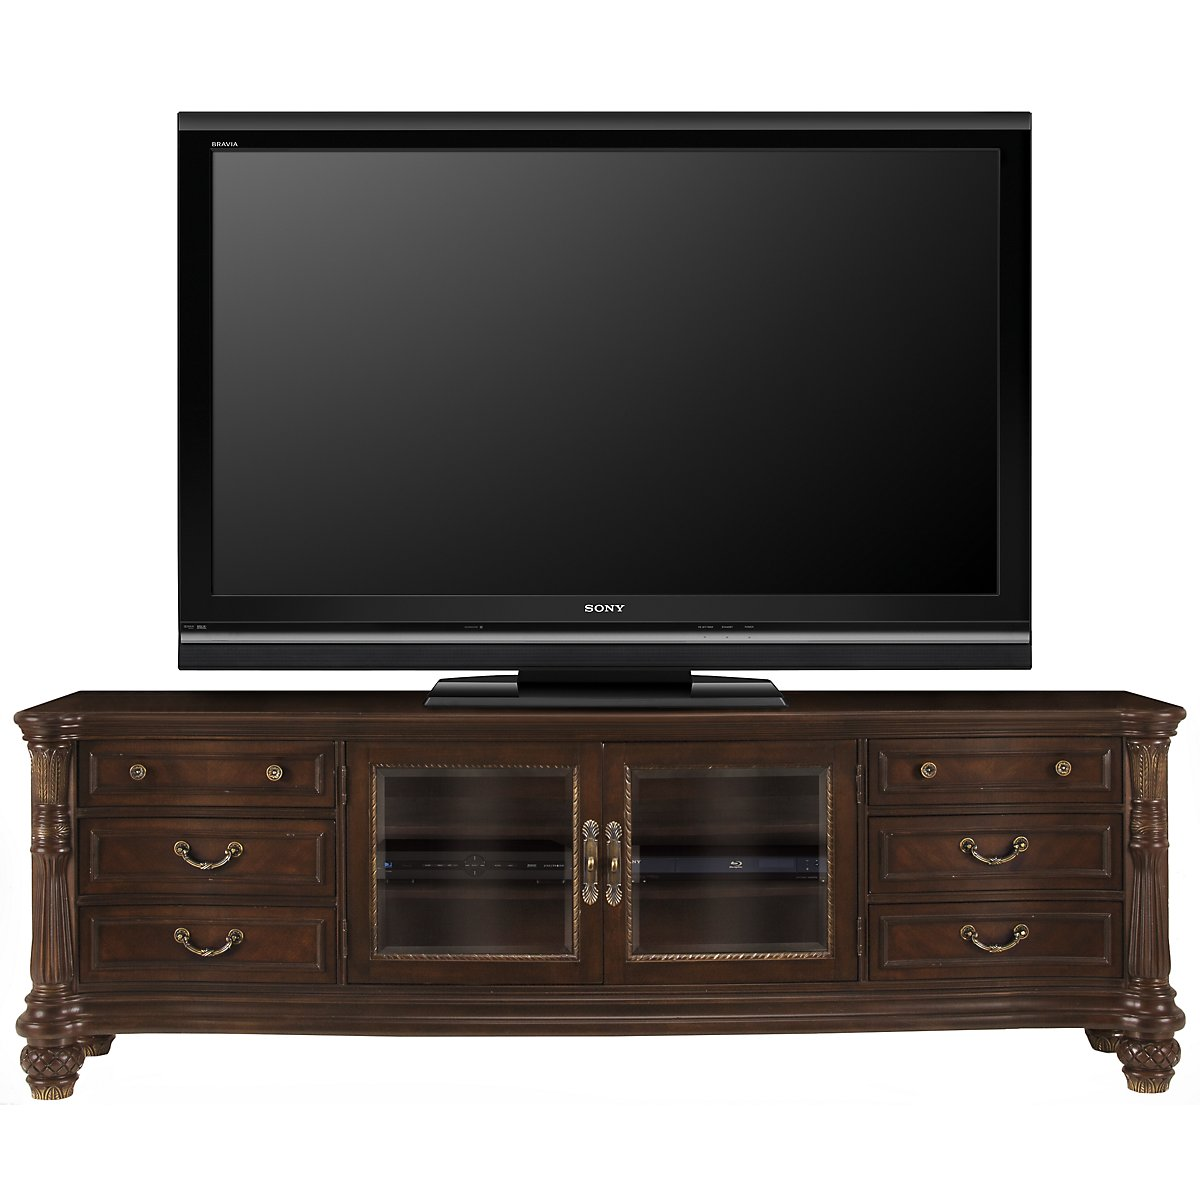 "Tradewinds Dark Tone 92"" TV Stand"